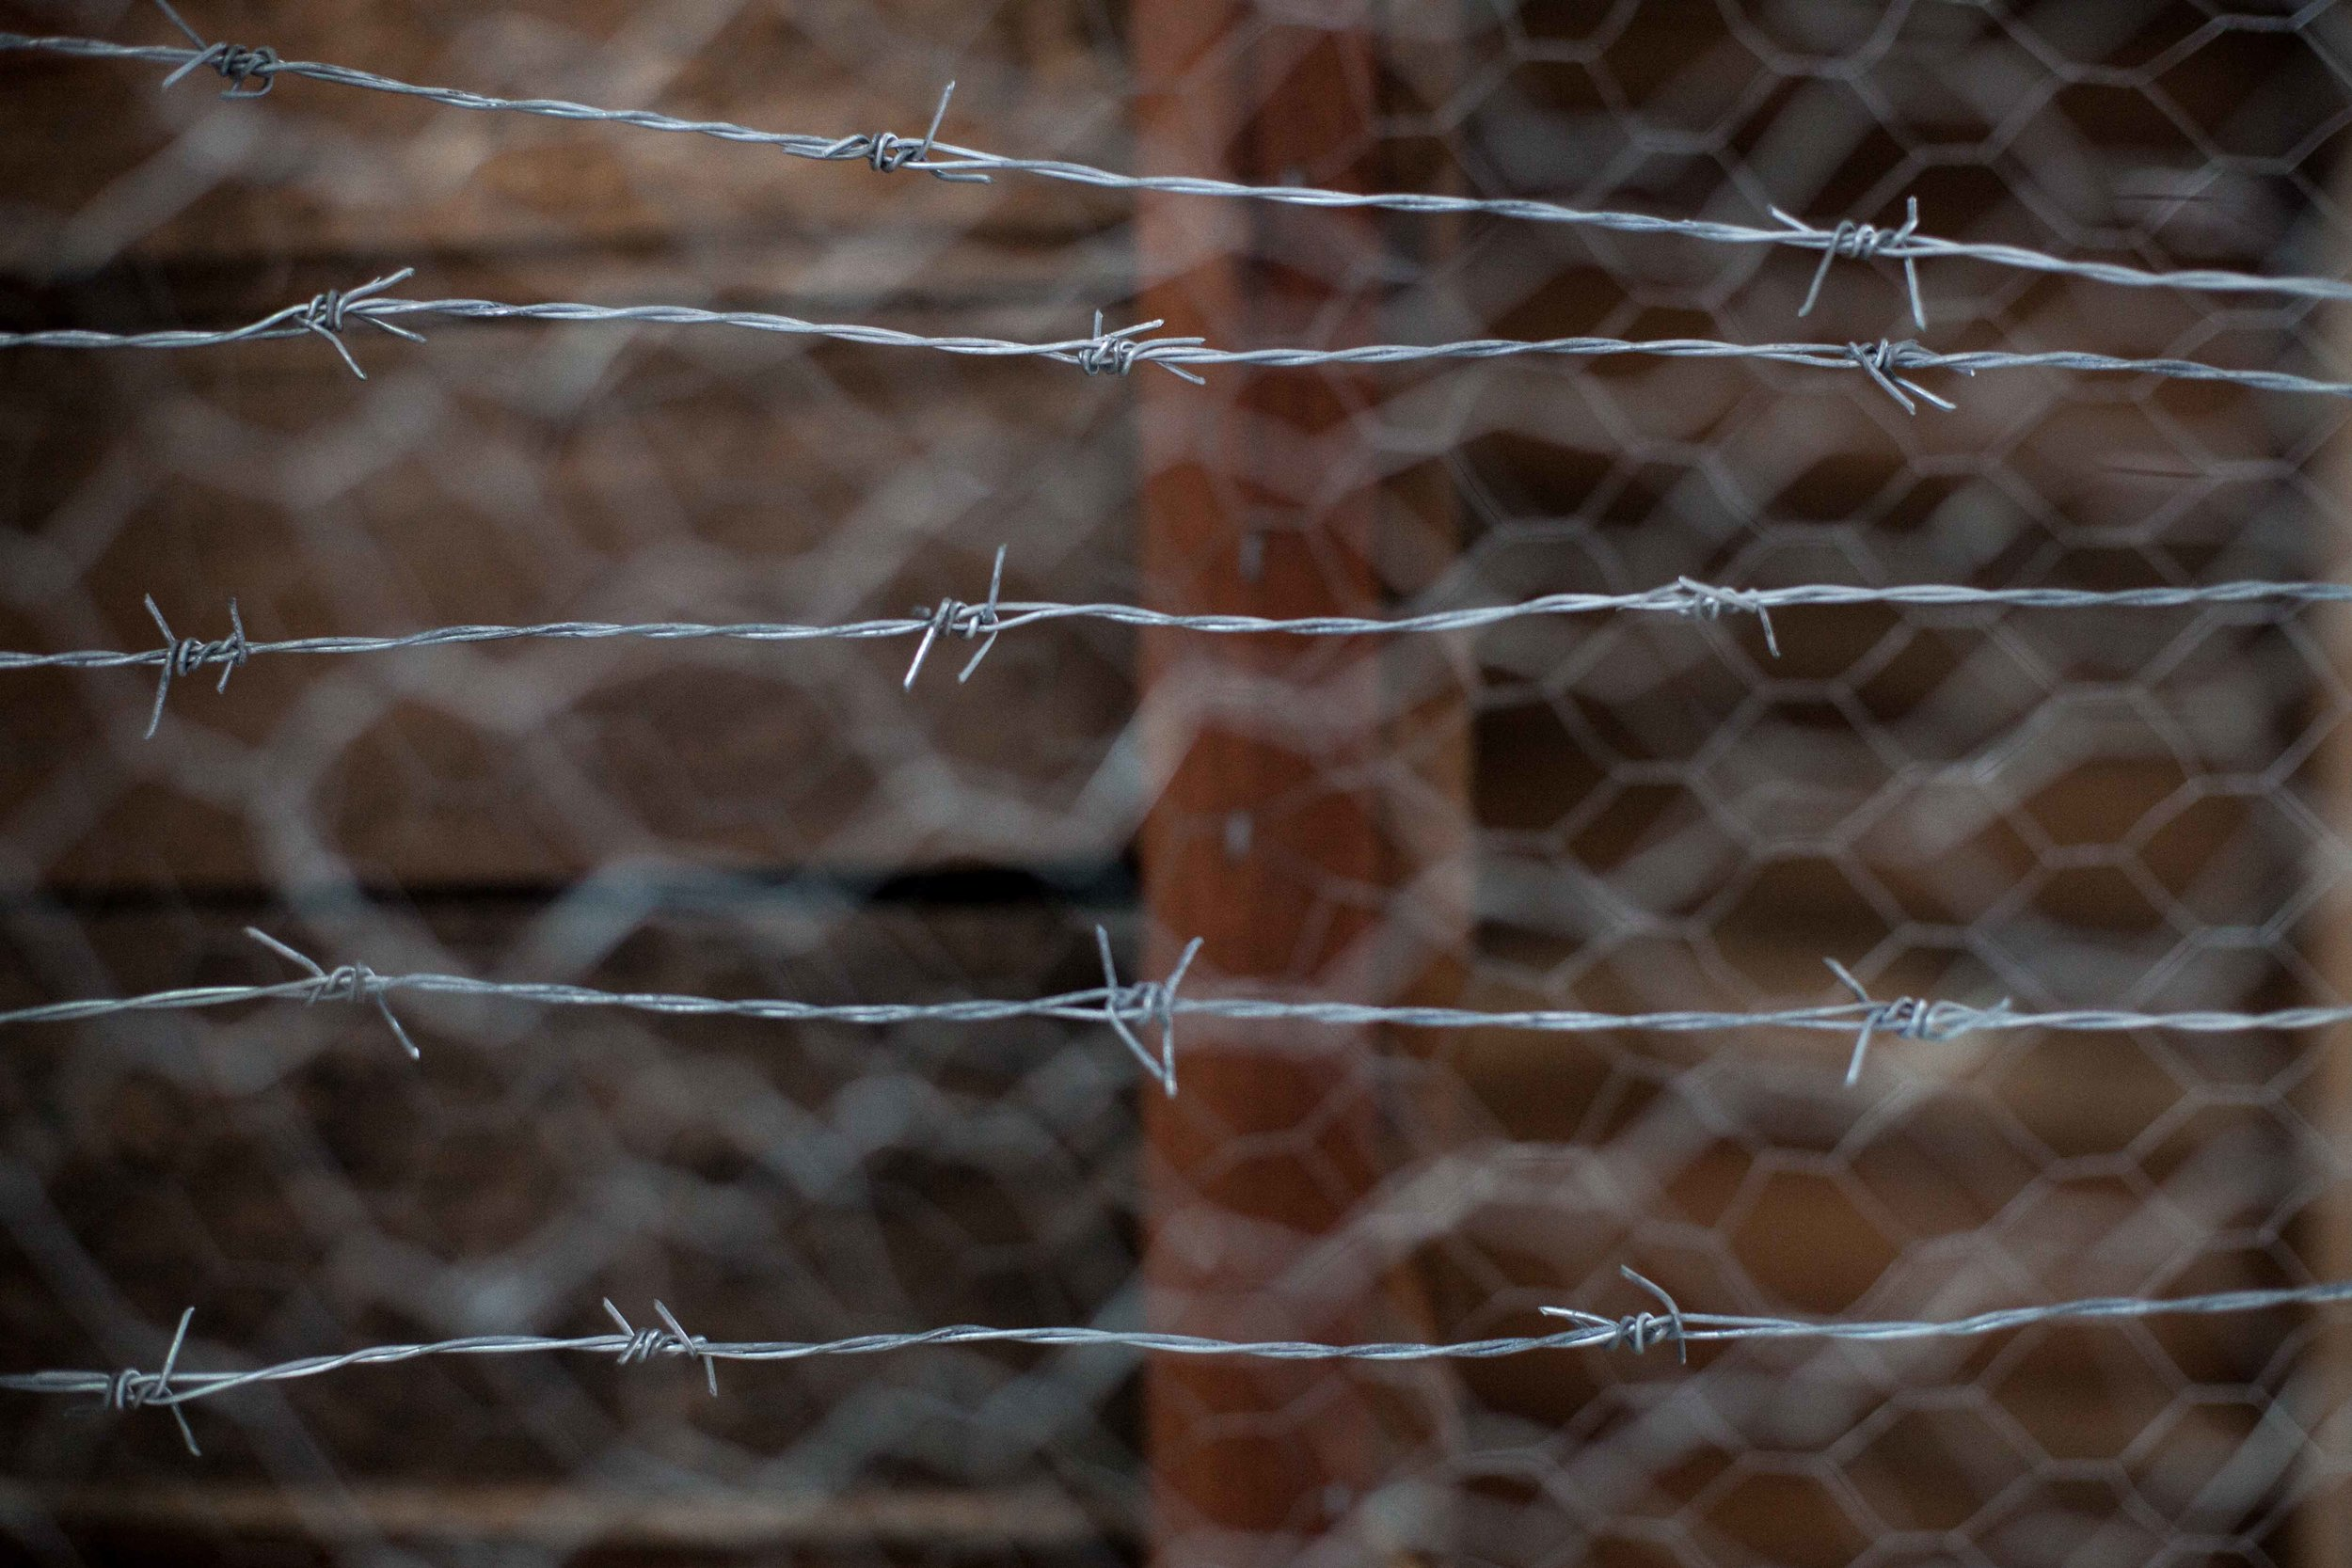 Hundreds of soldiers were kidnapped by the FARC guerrilla and they were kept herded in barbed wire cages, some of them for years. Marines Museum at the Marines Training Base (Coveñas, 2016).